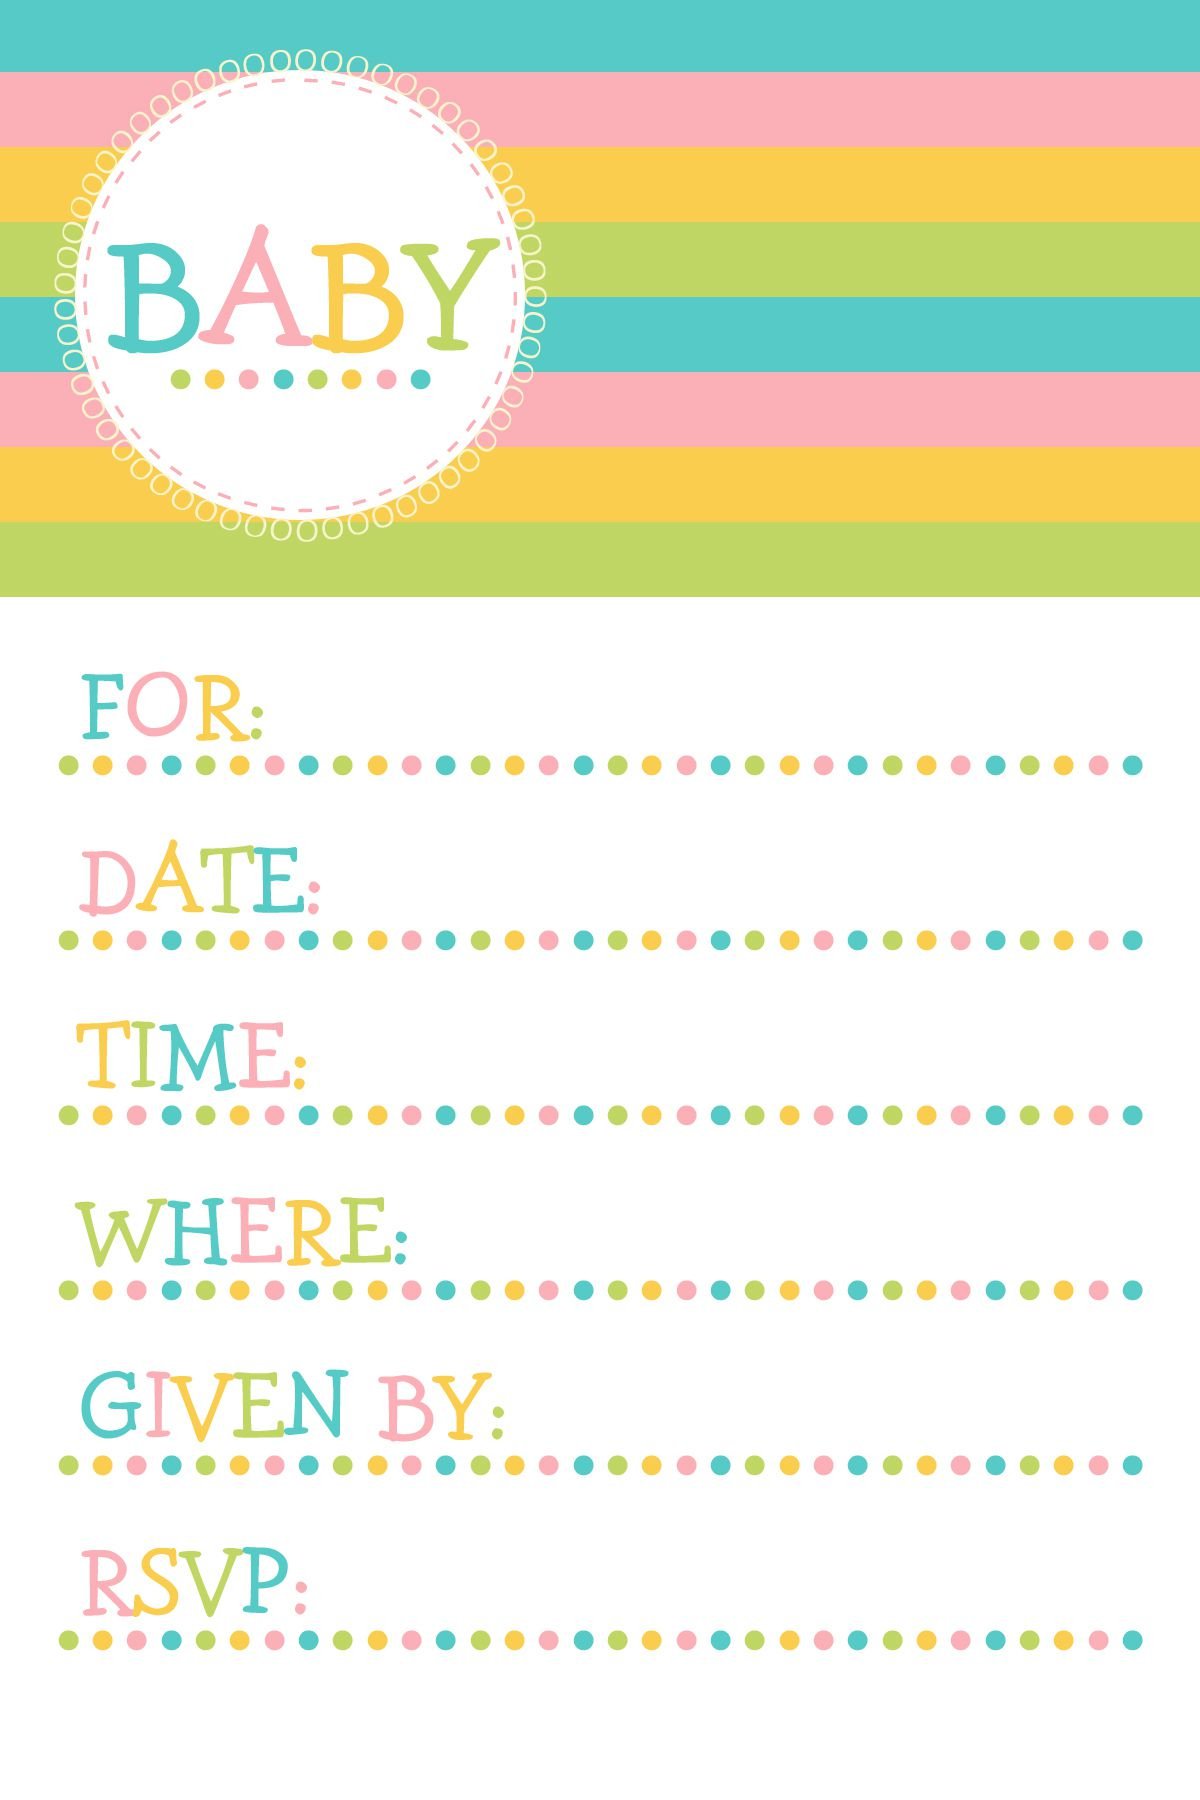 25 Adorable Free Printable Baby Shower Invitations - Baby Invitations Printable Free